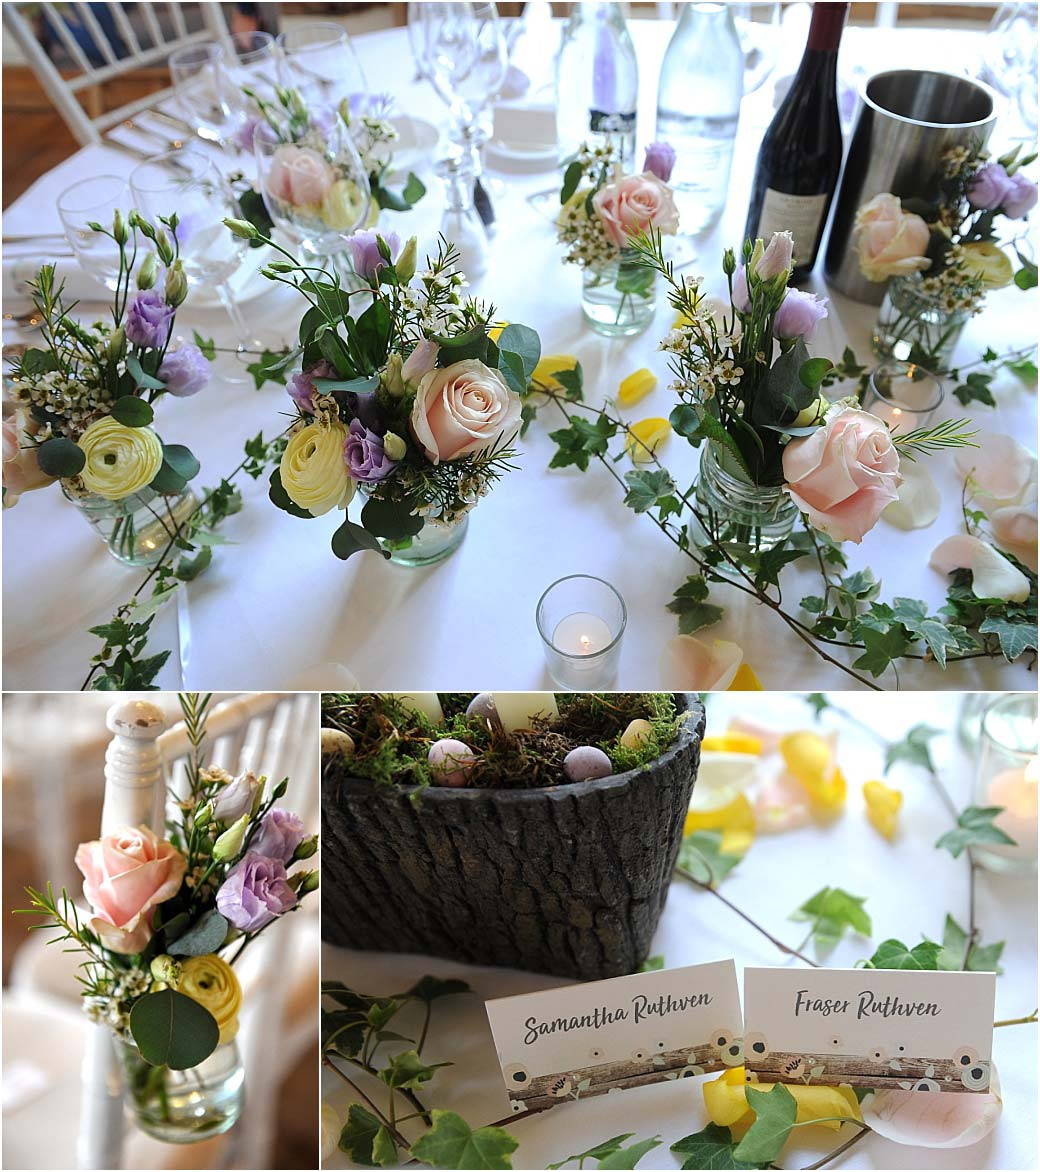 Pastel coloured roses, Easter Eggs and ivy set out on the tables ready for the bright Easter themed wedding breakfast at Surrey venue Cain Manor